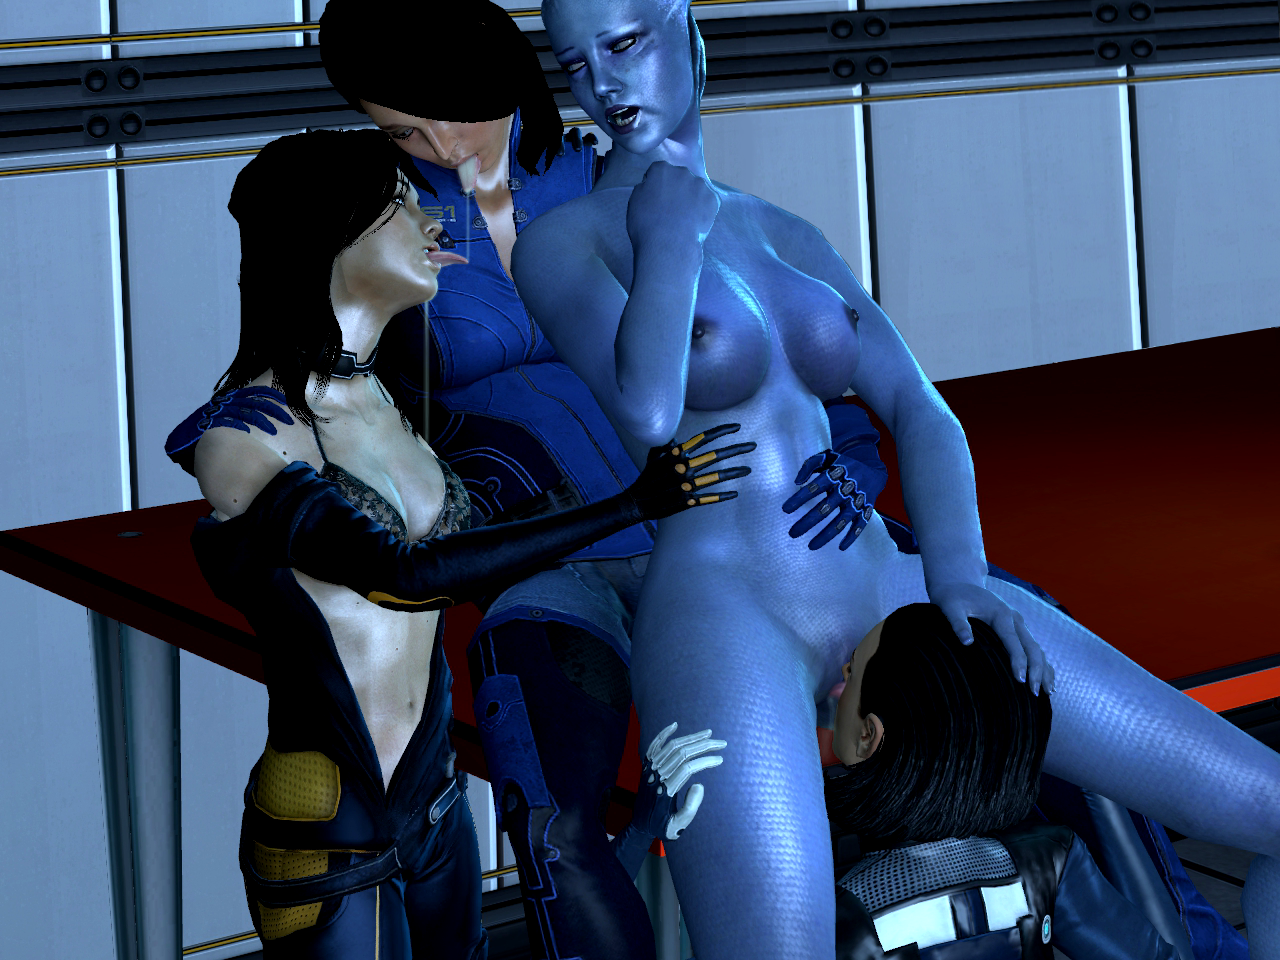 Mass effect porn image gallery nackt gallery